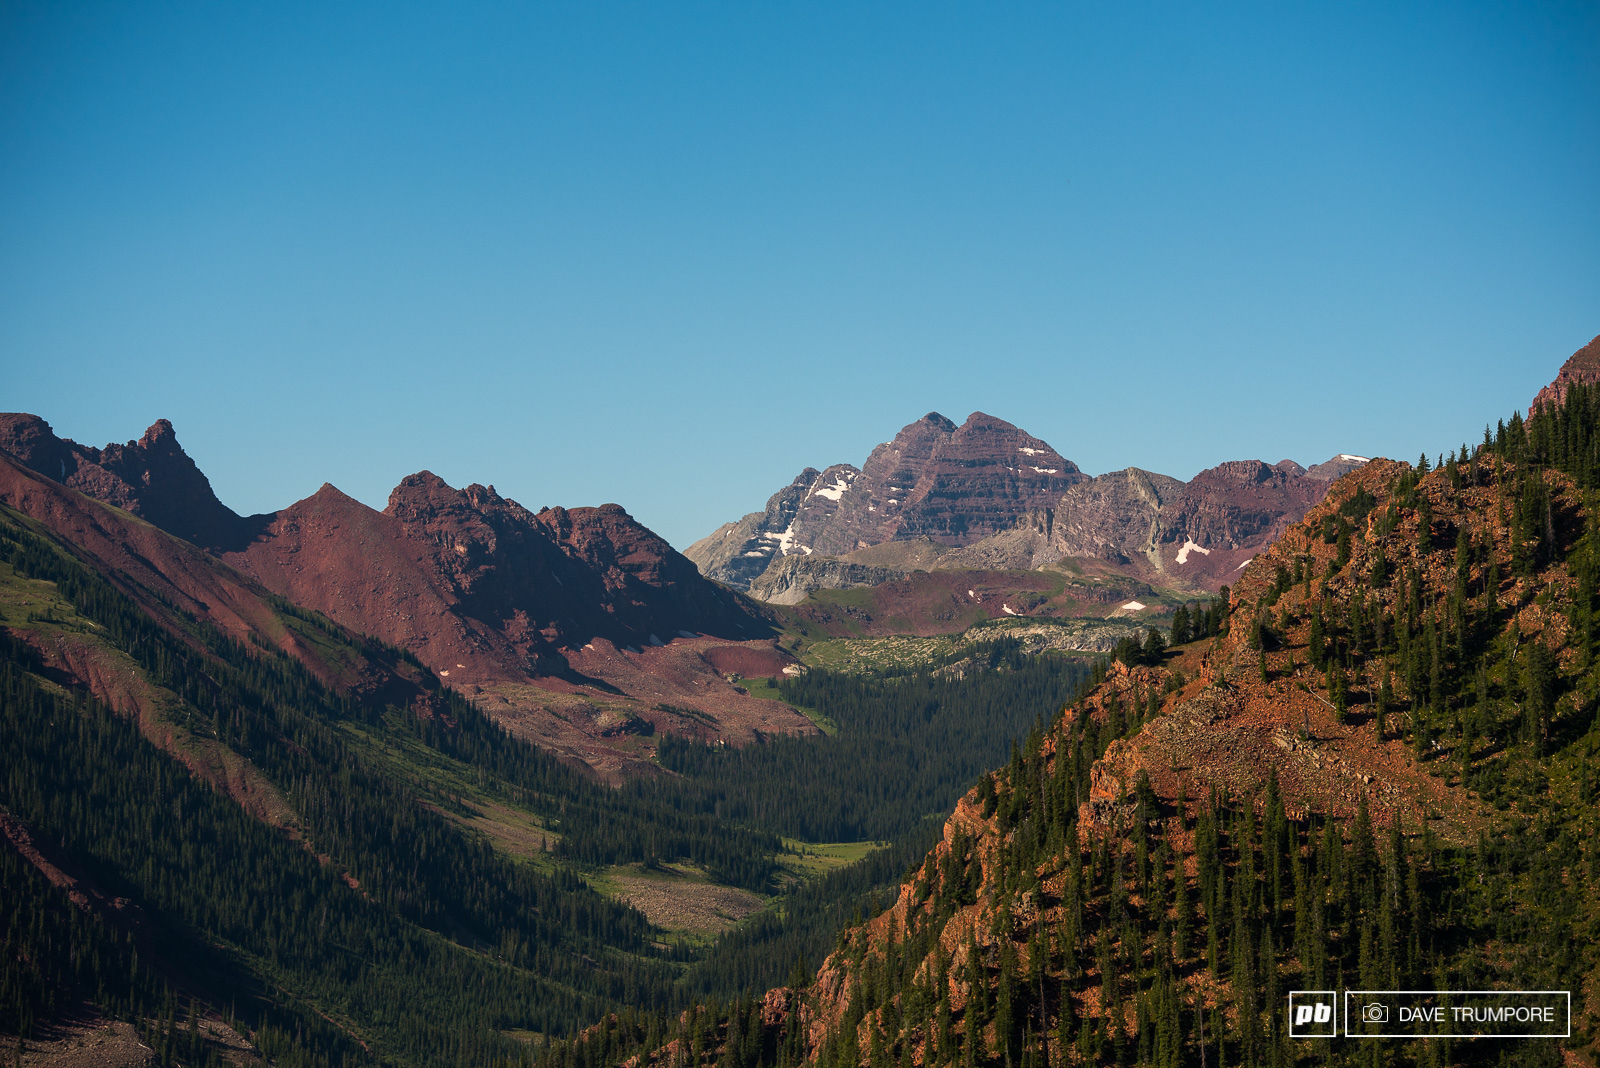 The iconic Maroon Bells as see from the top of stage 4